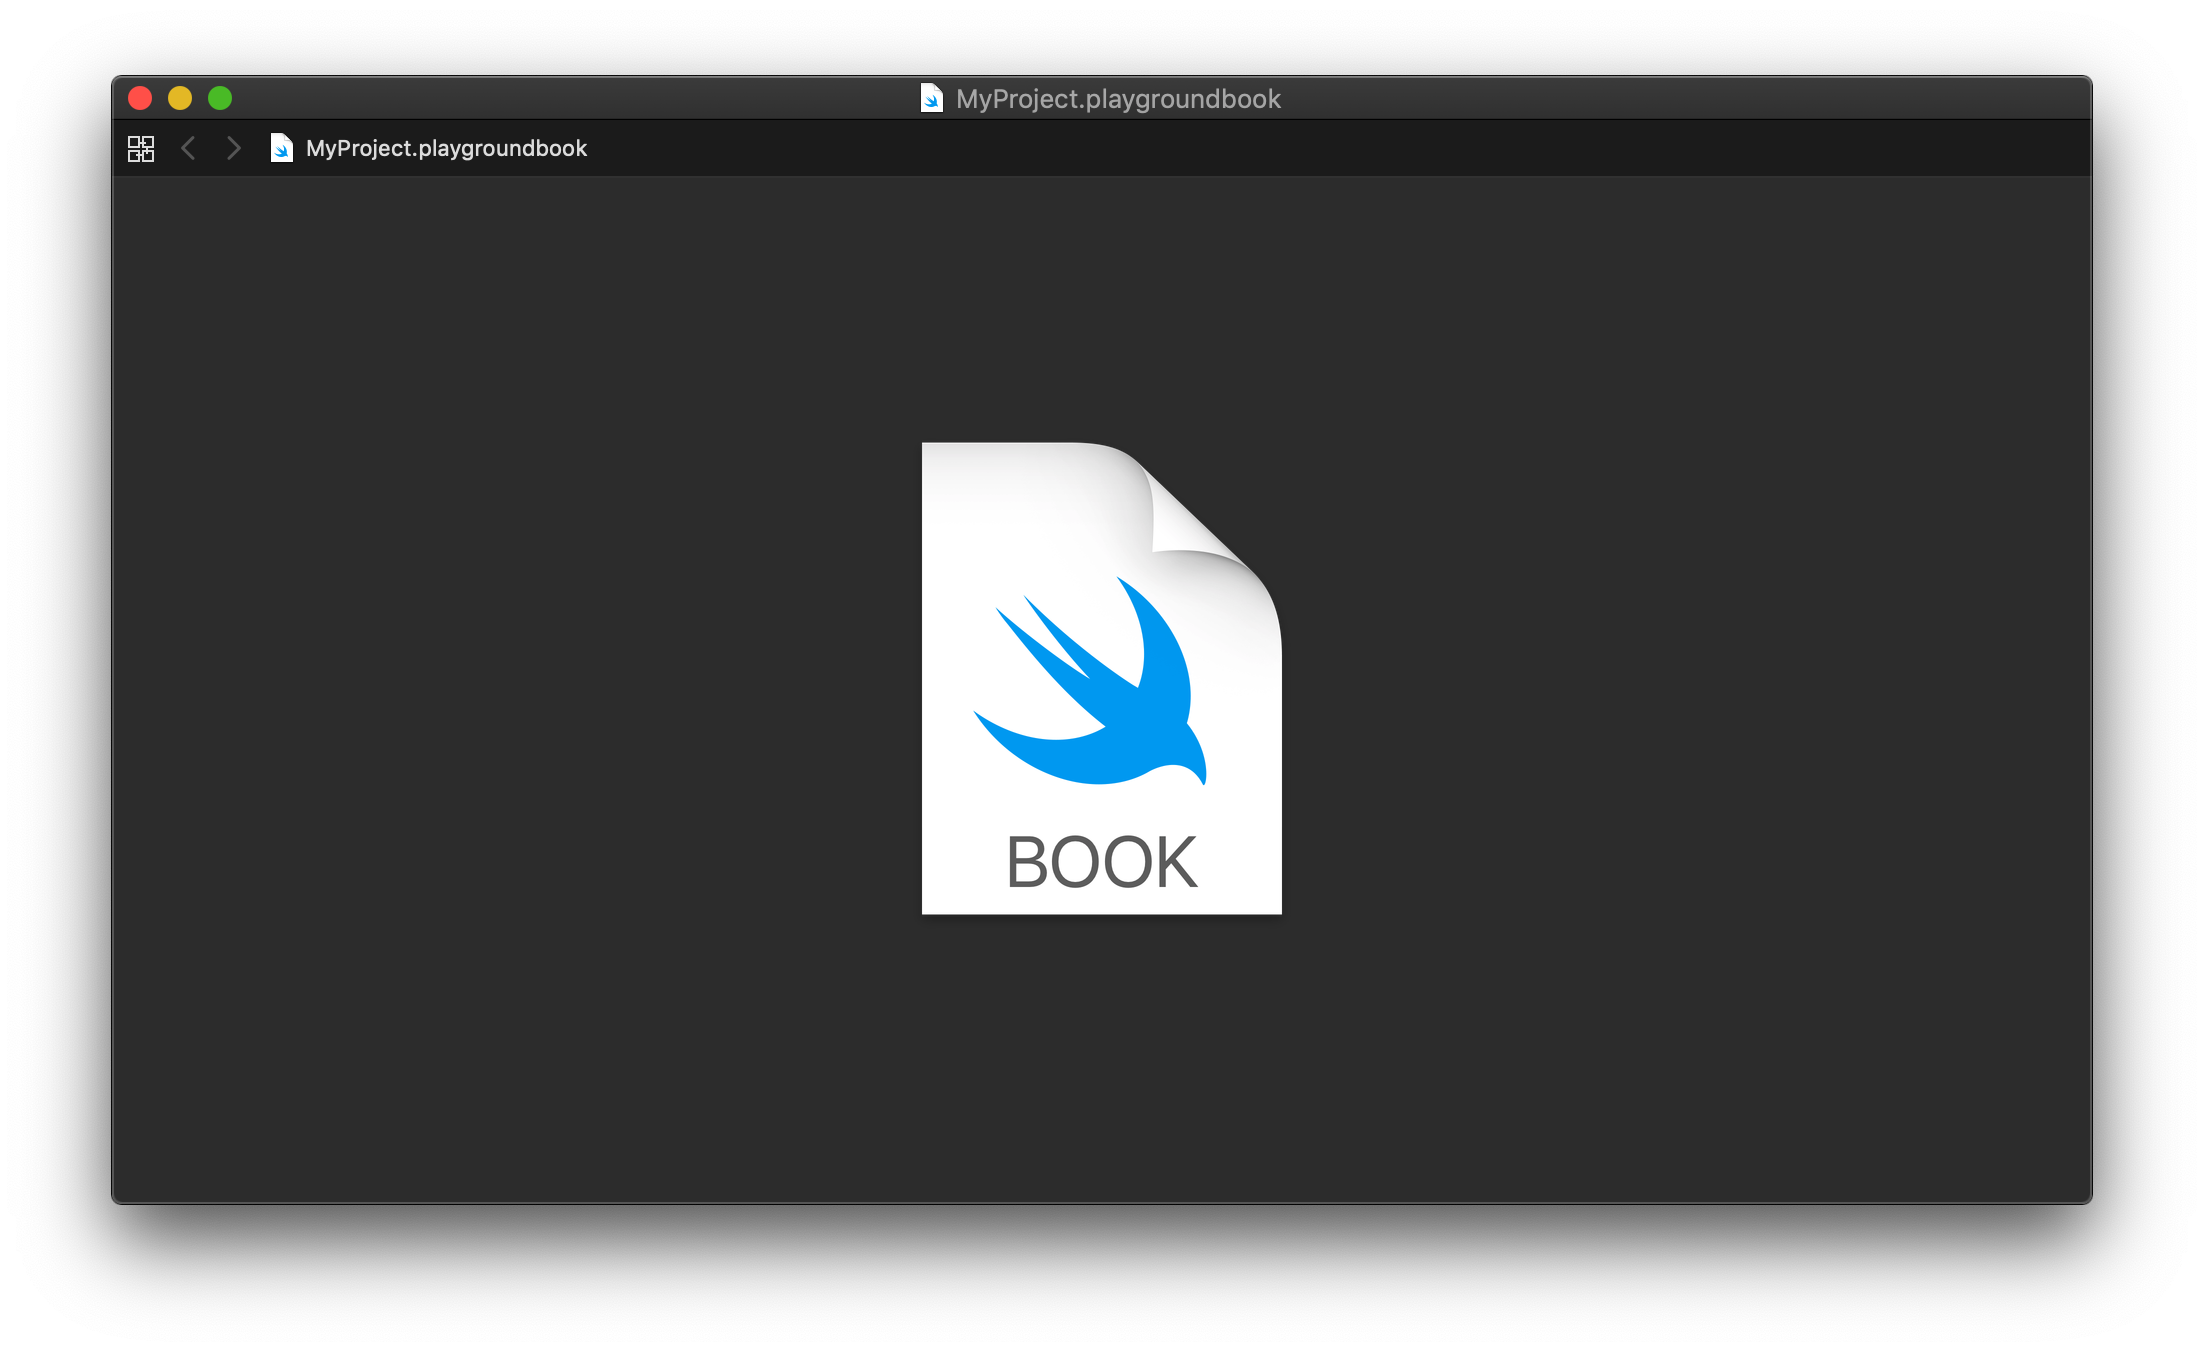 How a Swift Playground book gets displayed in Xcode